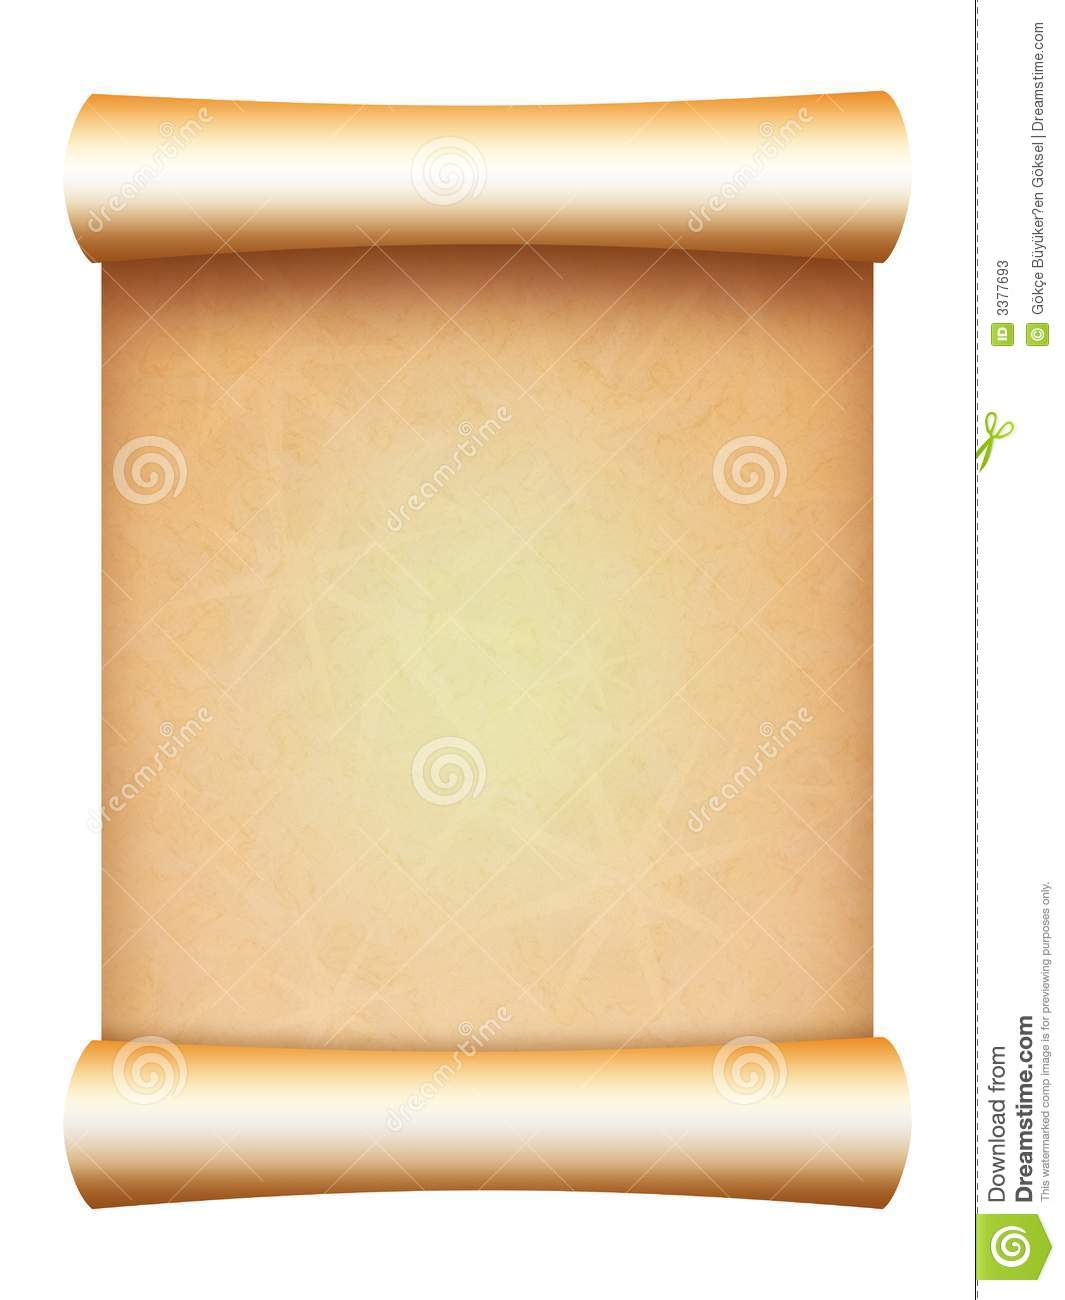 parchment paper scroll stock illustration illustration of worn